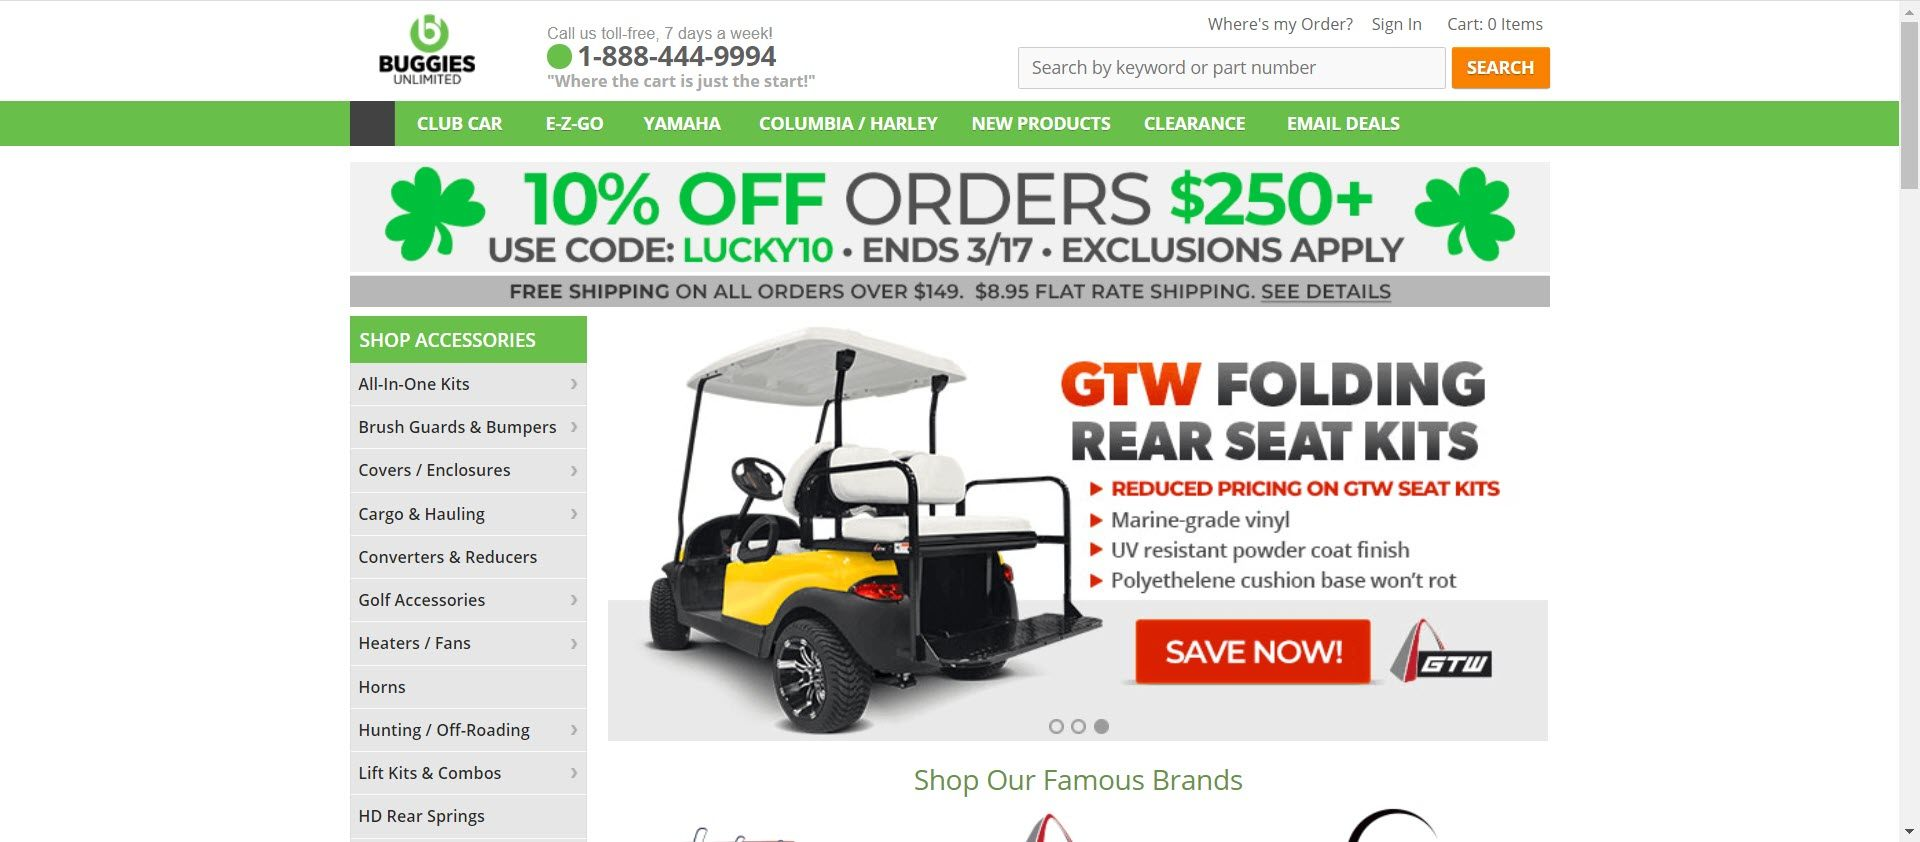 Best Golf Affiliate Programs - Buggies unlimited